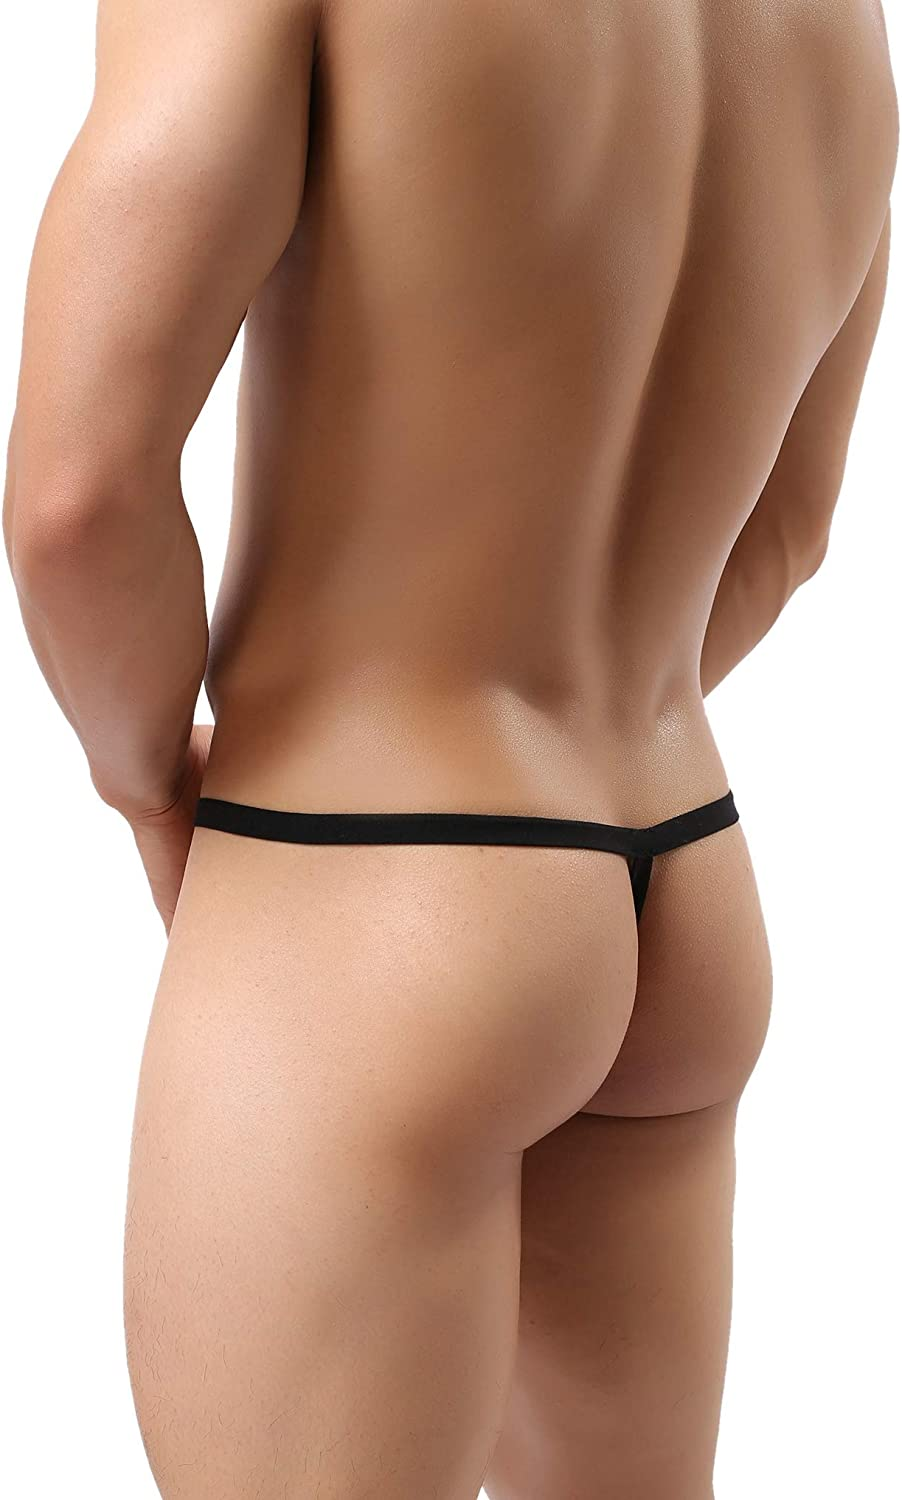 MuscleMate Hot Mens See-Through Thong Underwear Mens Thong G-String Undie.